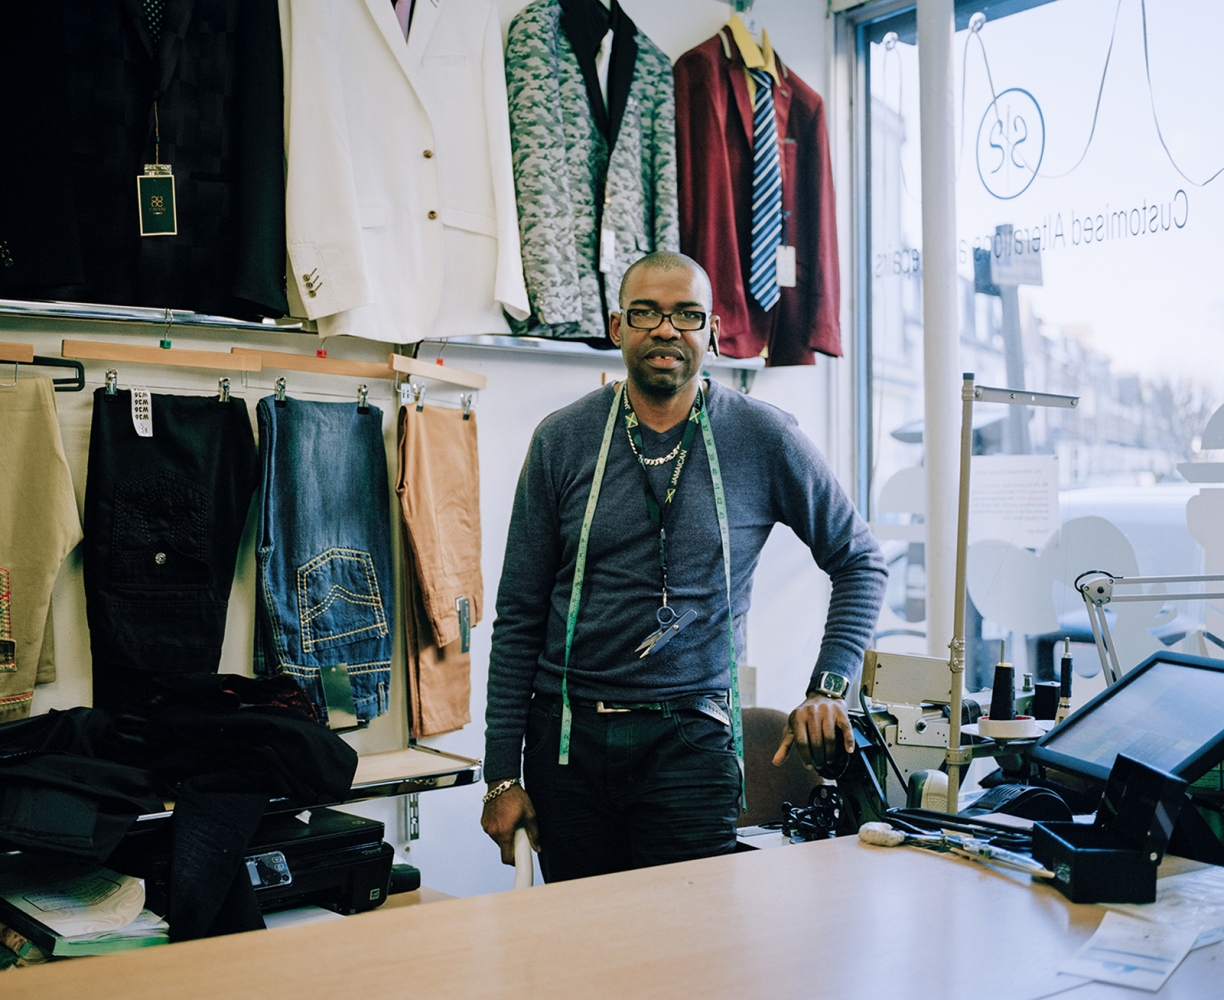 Simon Stewart has been running his tailoring business on the road for 7 years.